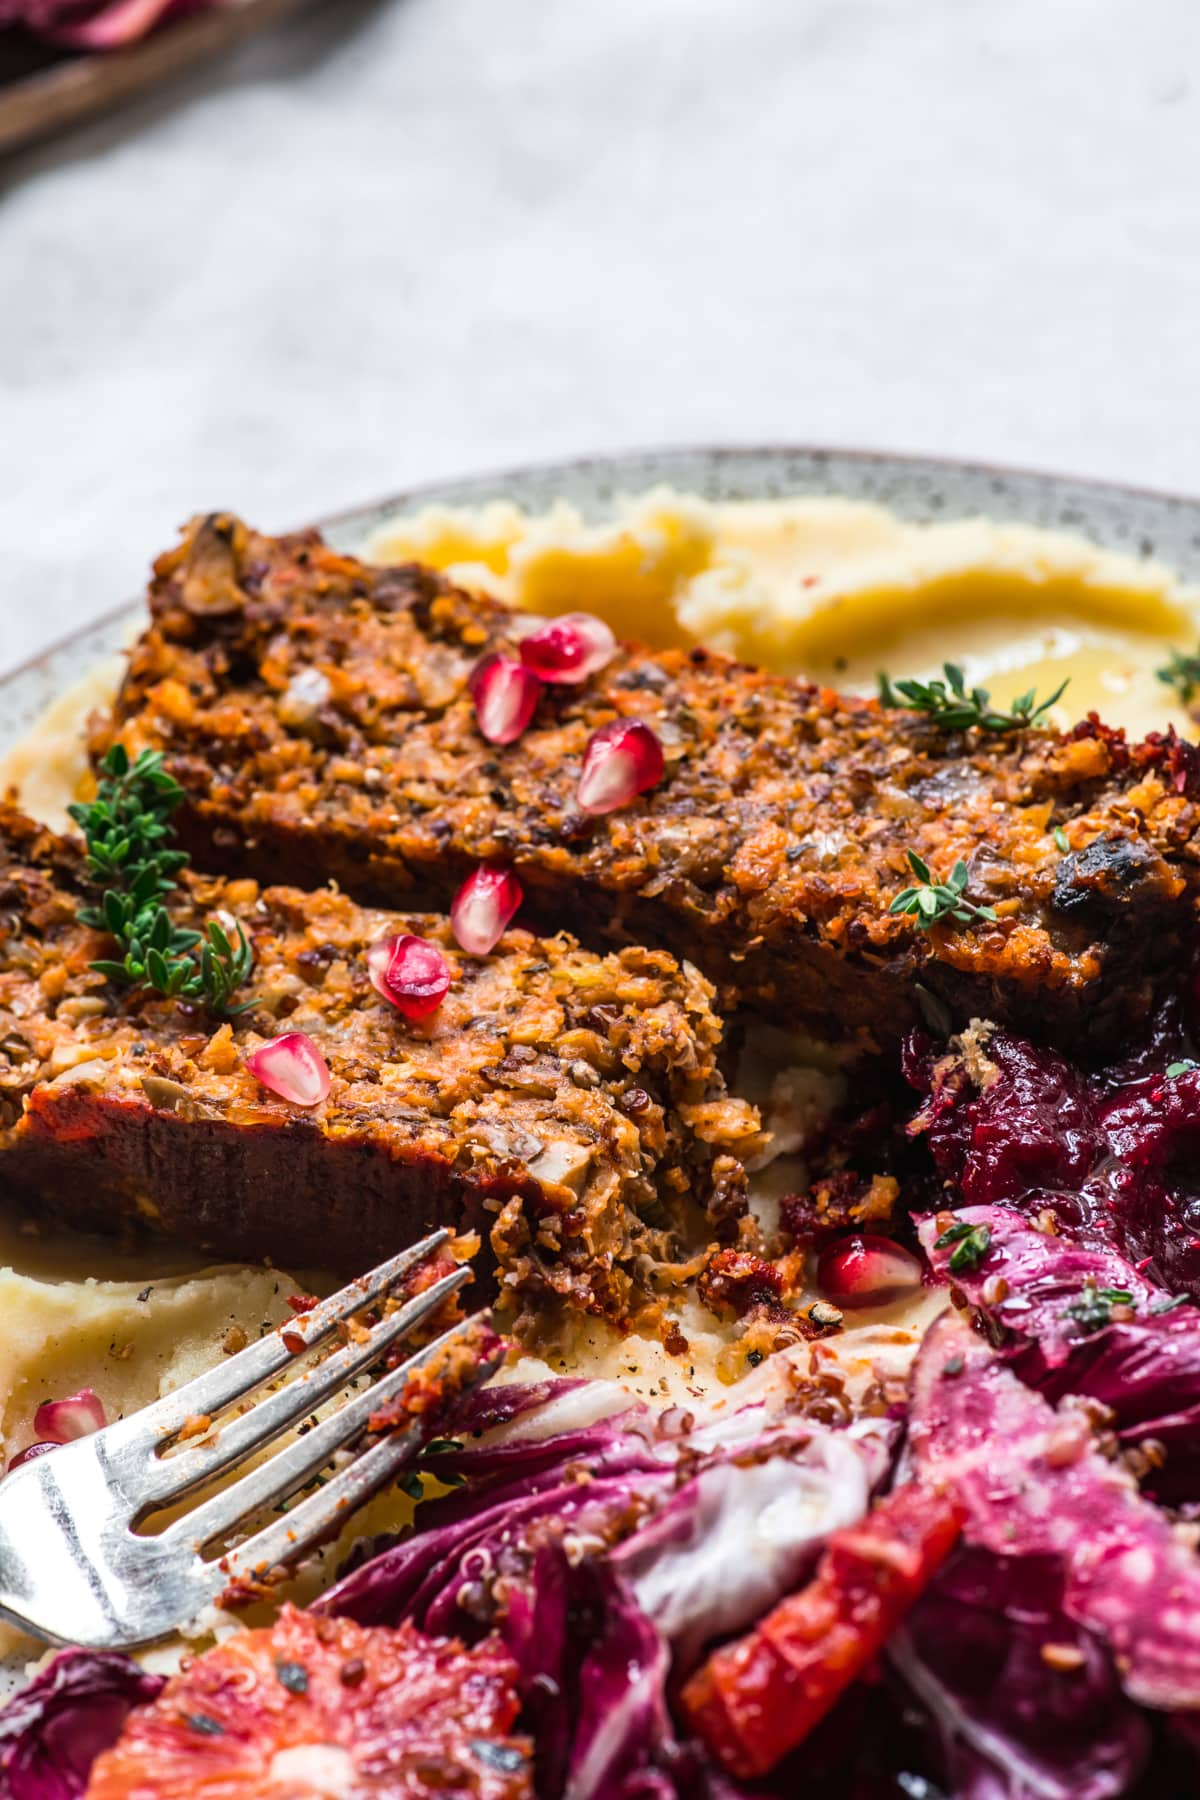 close up view of two slices of vegan lentil quinoa meatloaf on a plate.